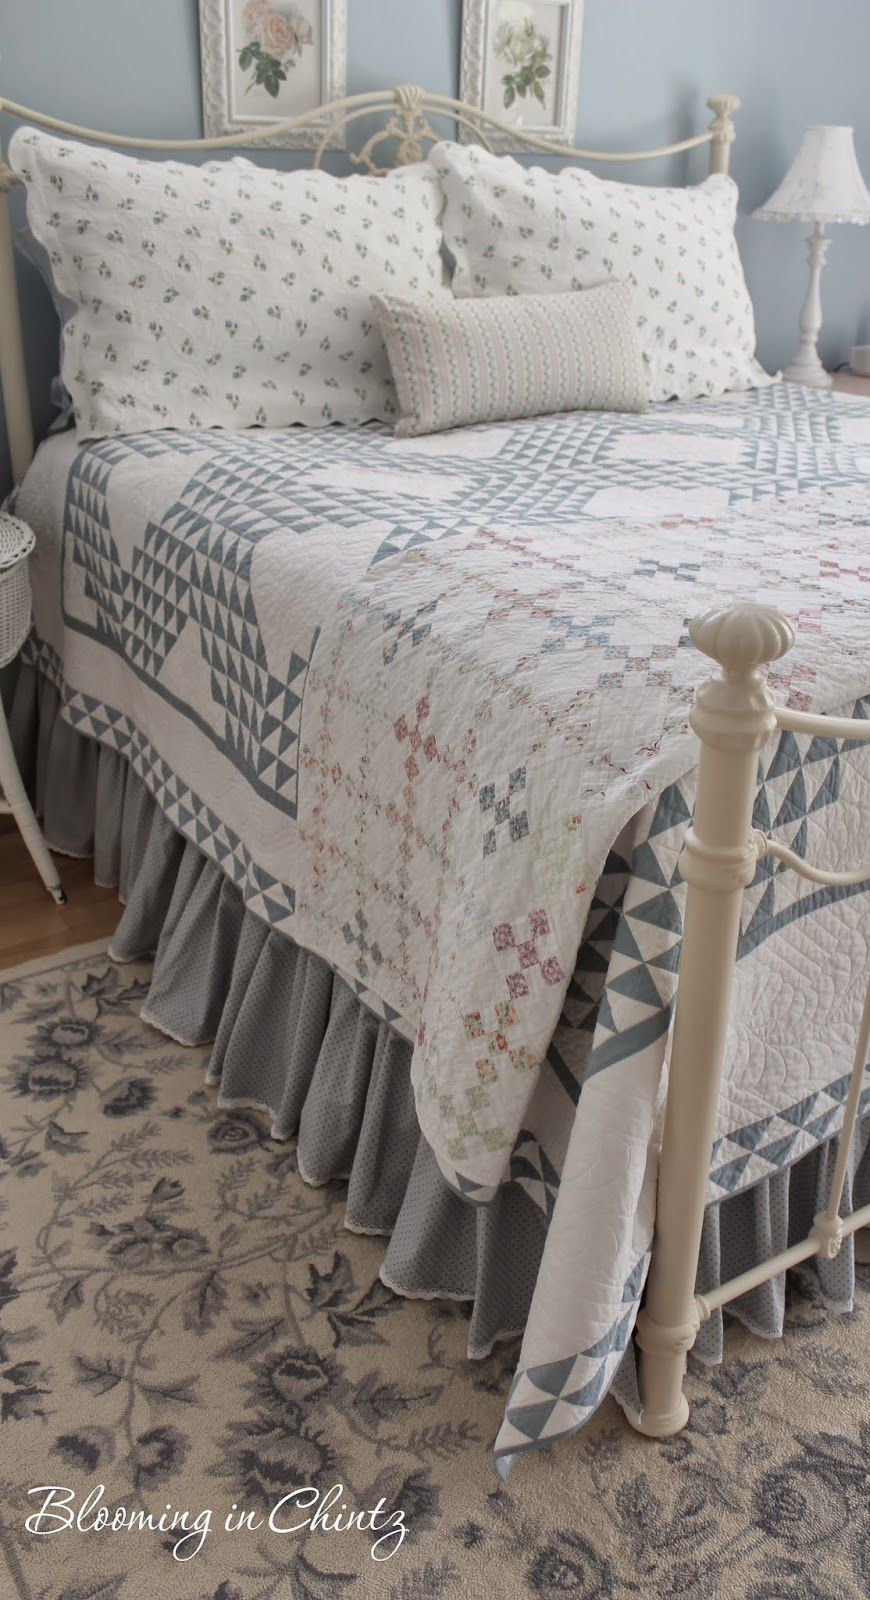 Blooming In Chintz Bedroom Quilts Farmhouse Quilts Bedroom Vintage